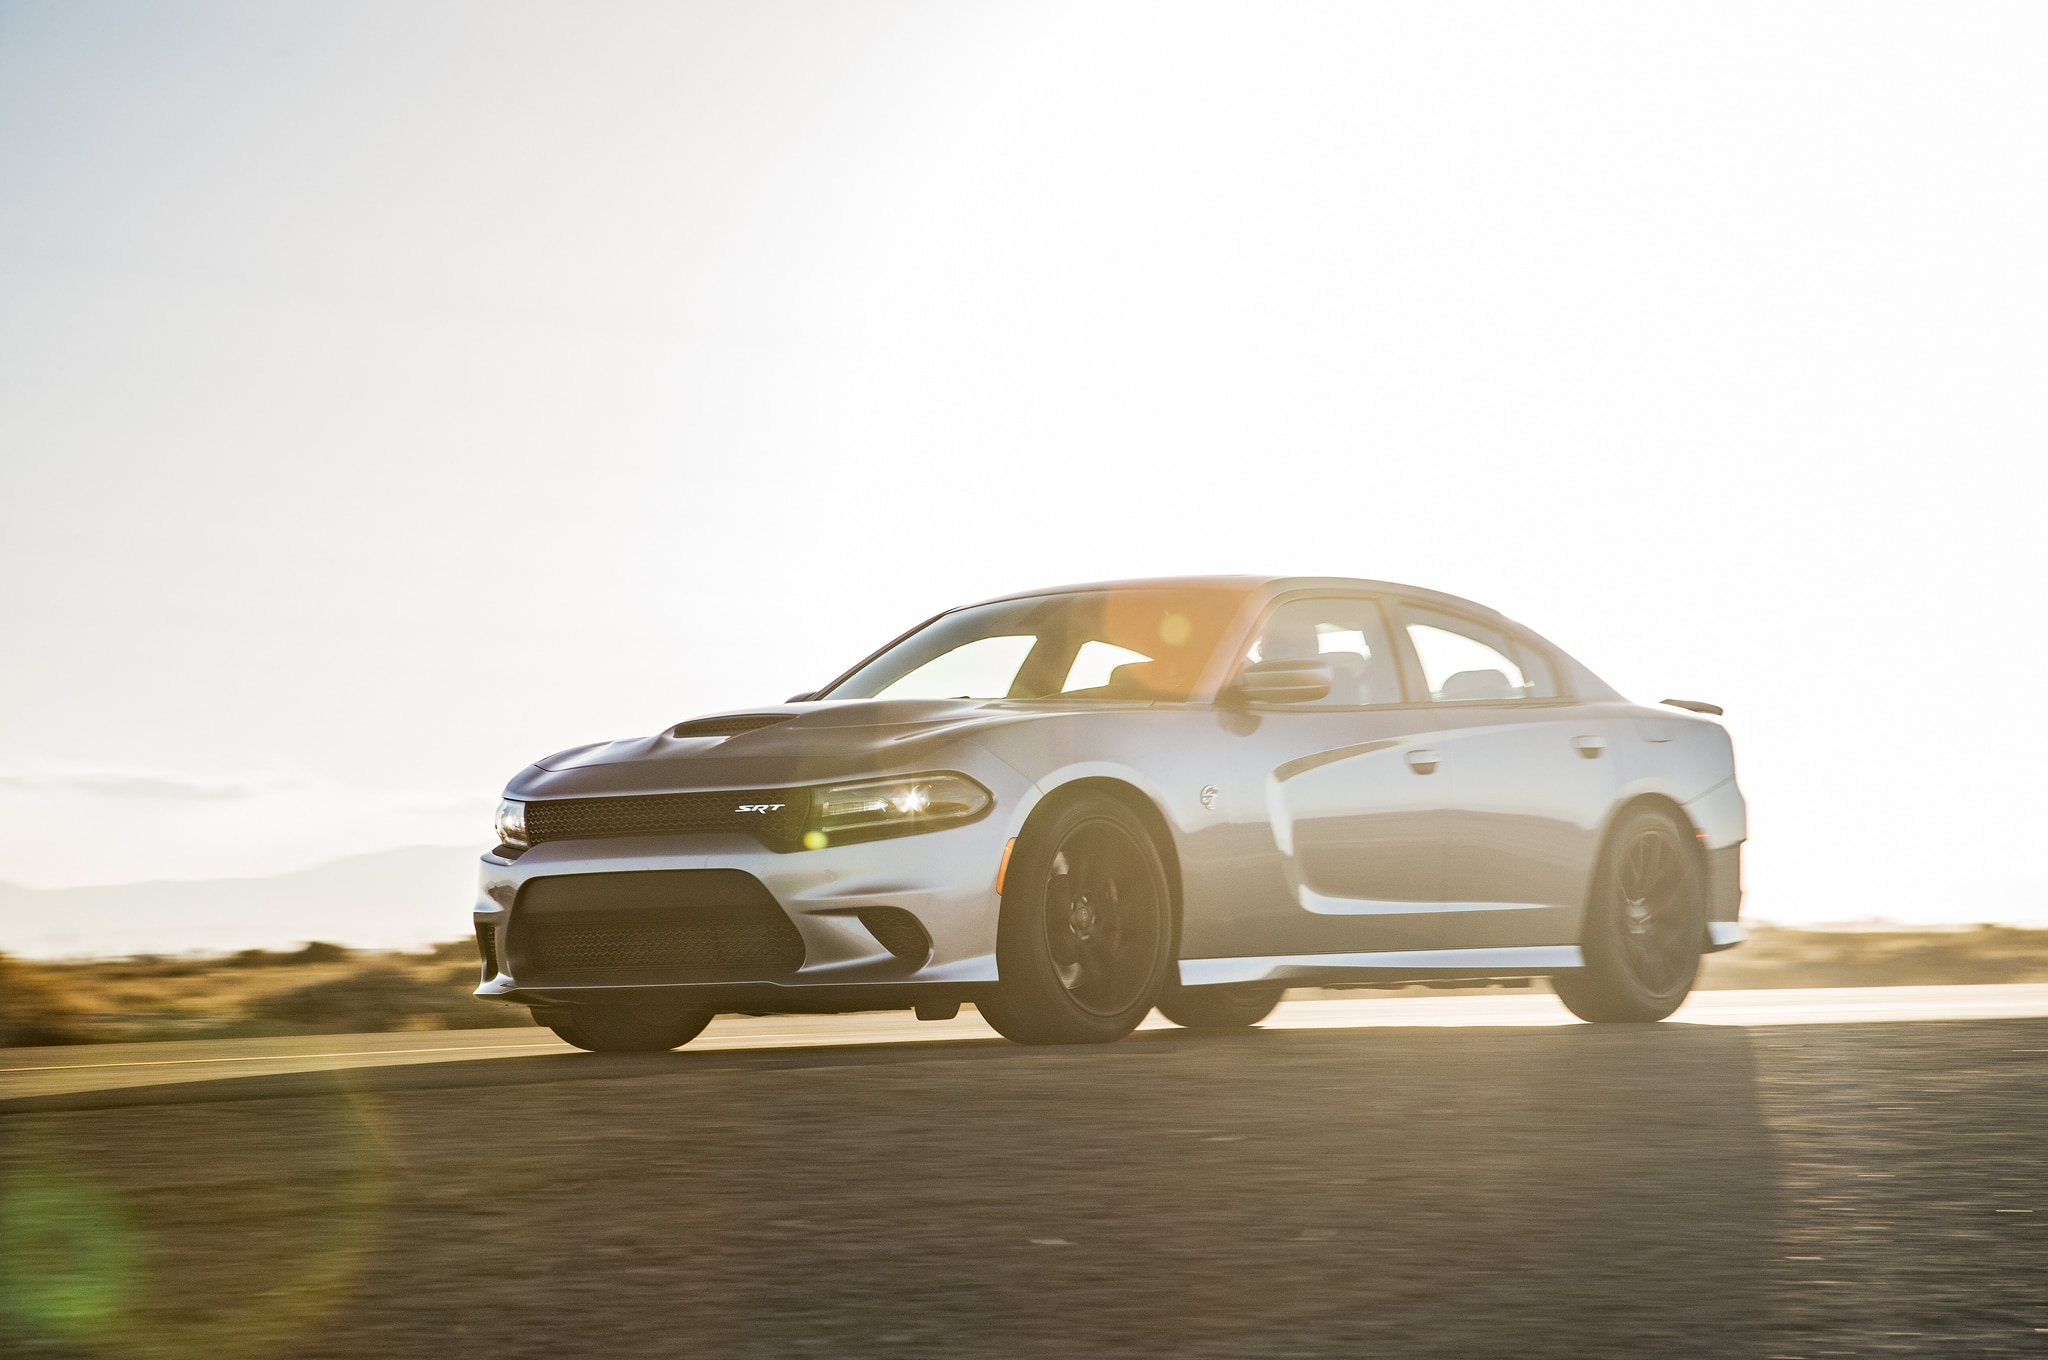 Hellcat Charger Burnout >> Flavors of Fast: 2015 Dodge Charger Hellcat vs. 2016 Nissan GT-R